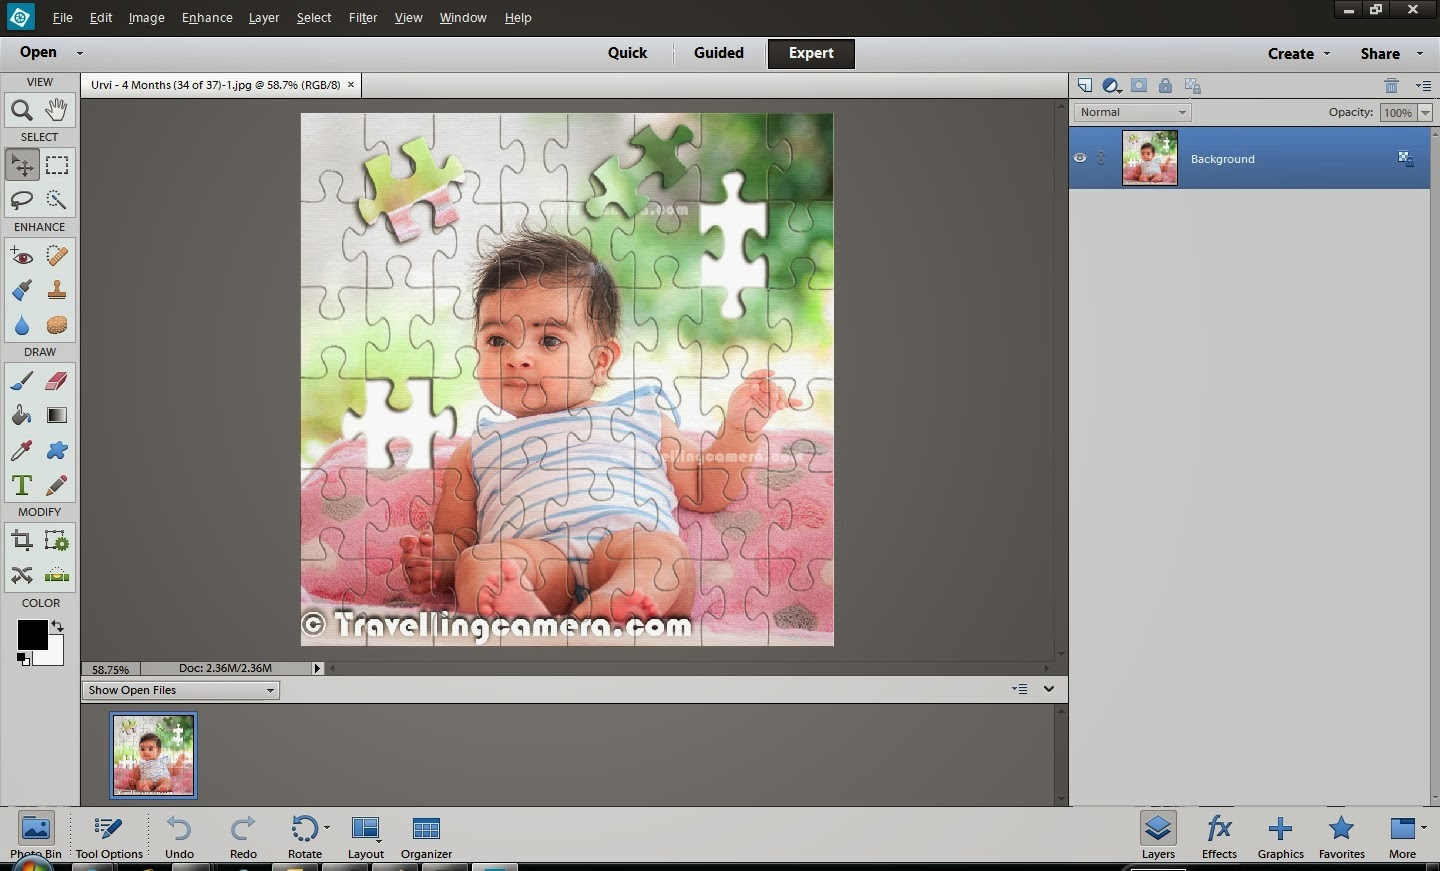 Photoshop Elements 2020: Should You Upgrade this Year?